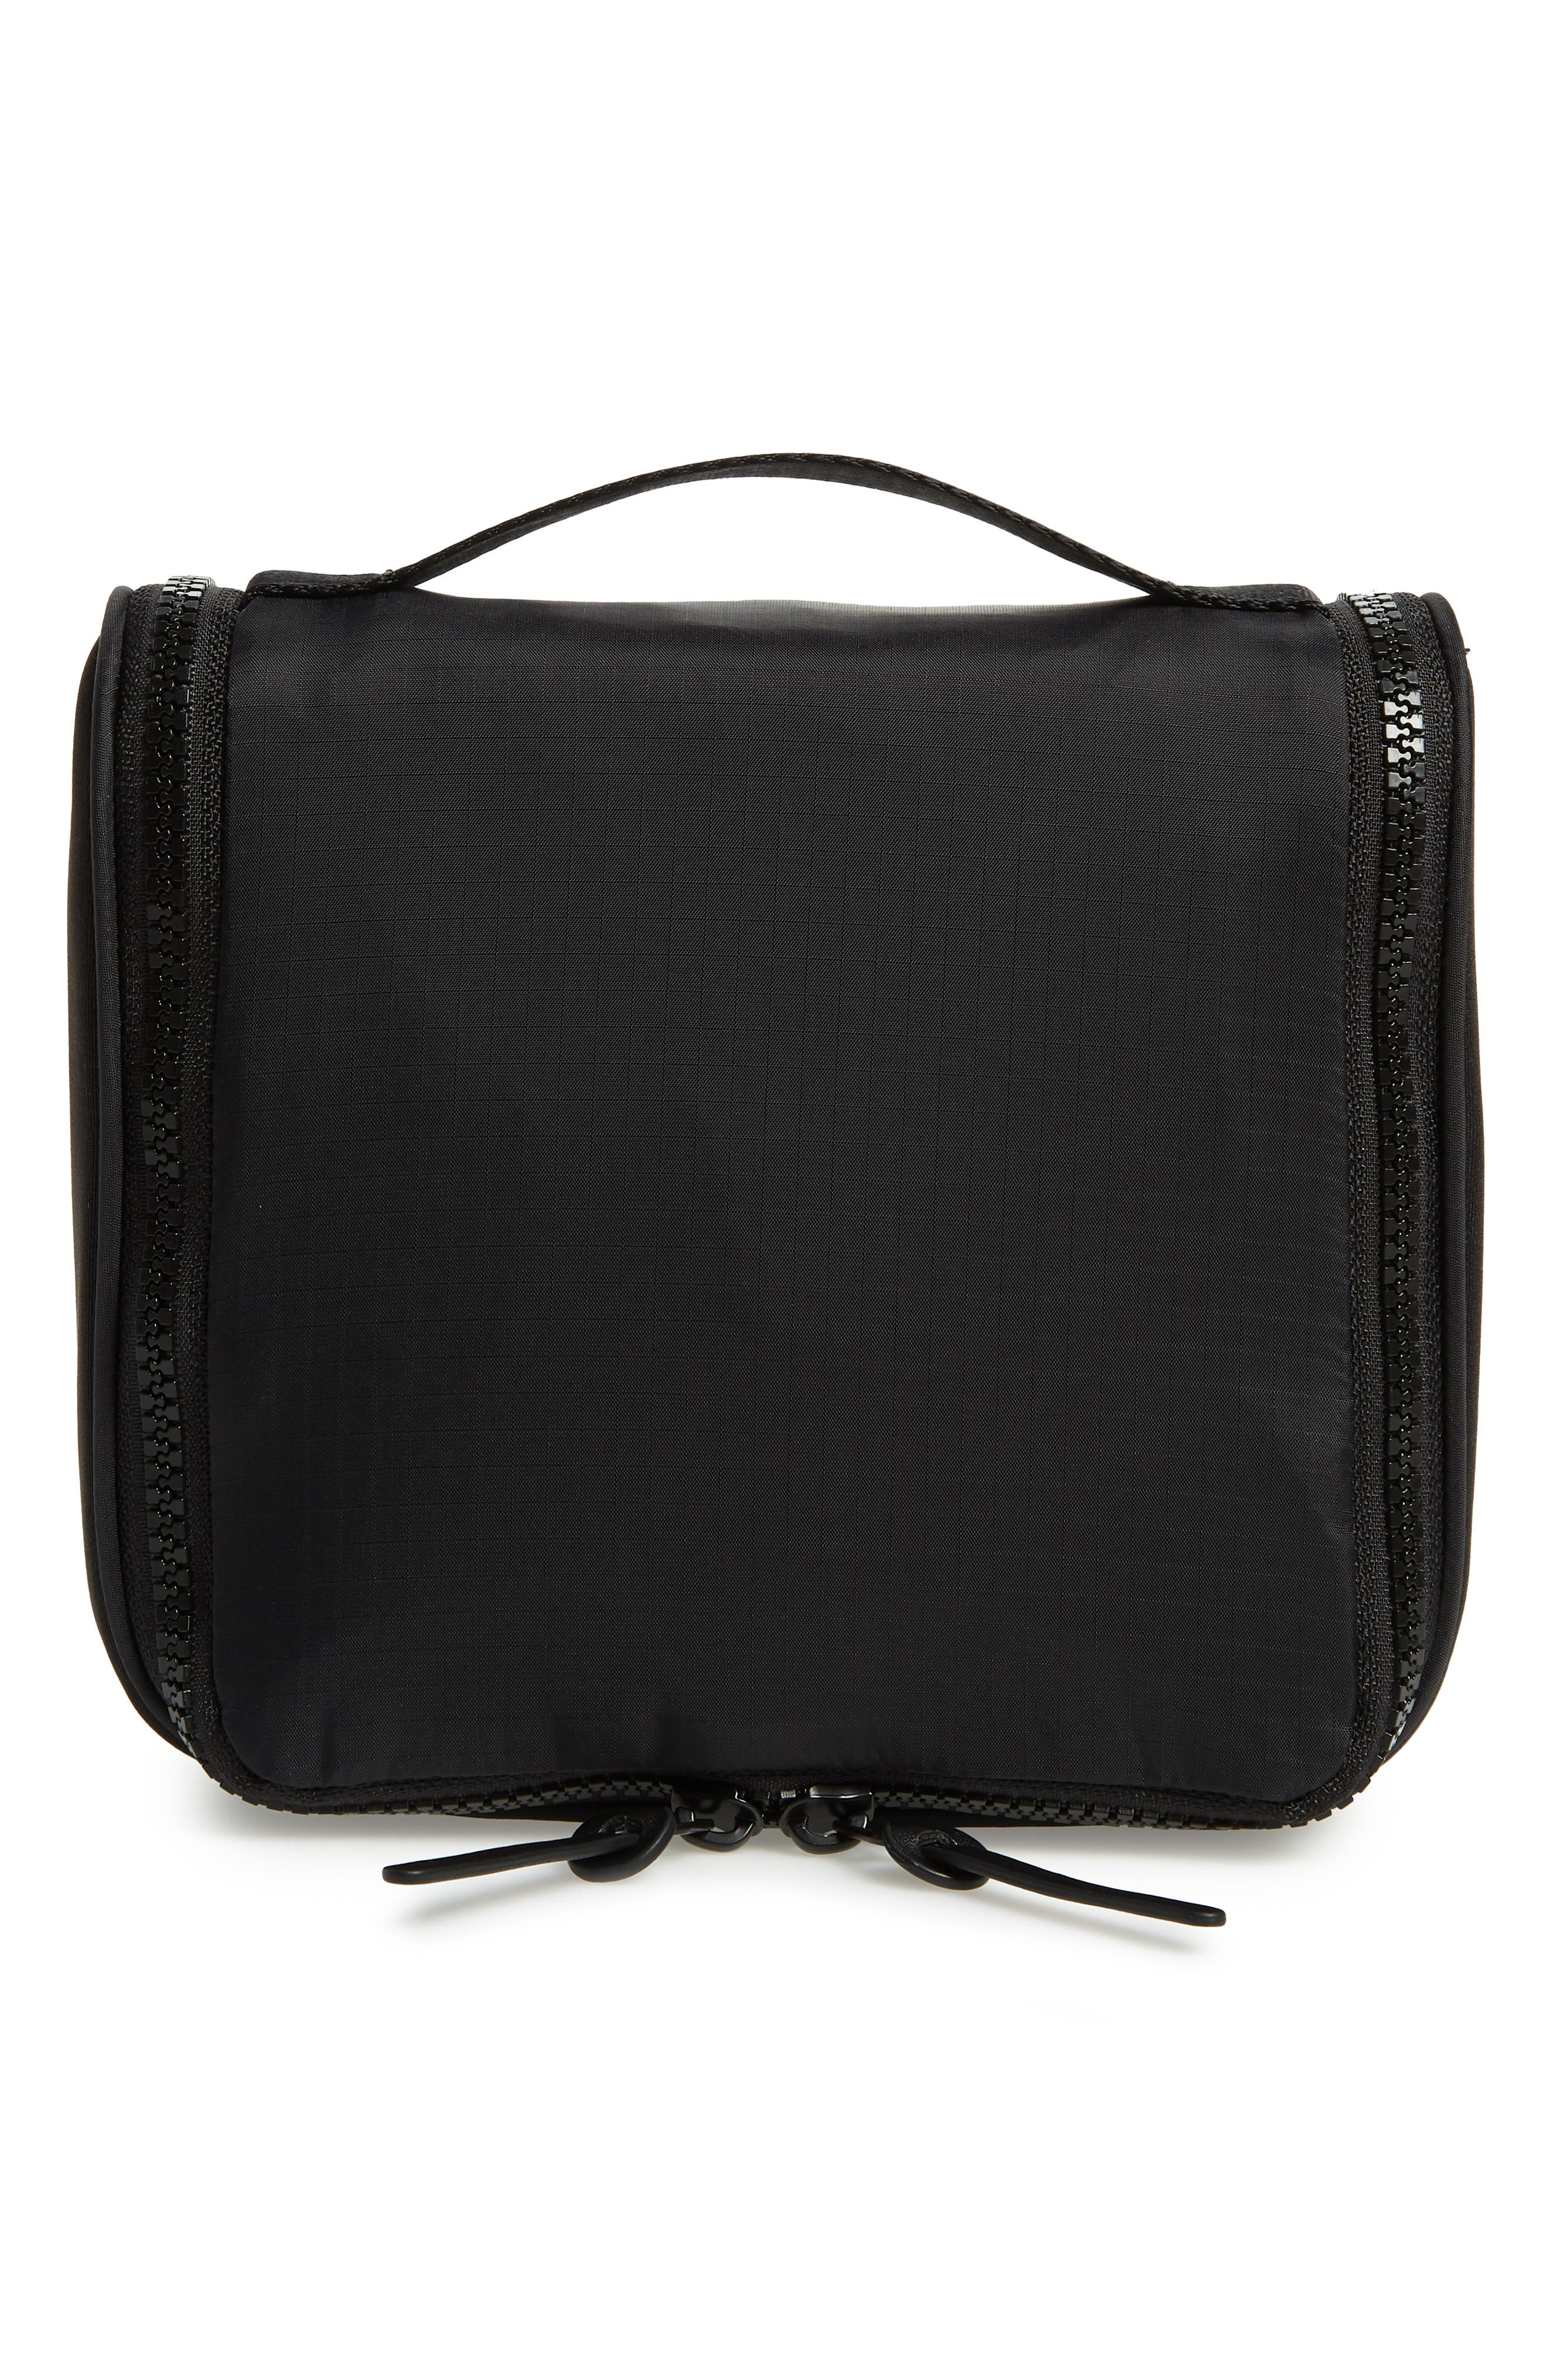 NORDSTROM Toiletry Bag, Main, color, BLACK